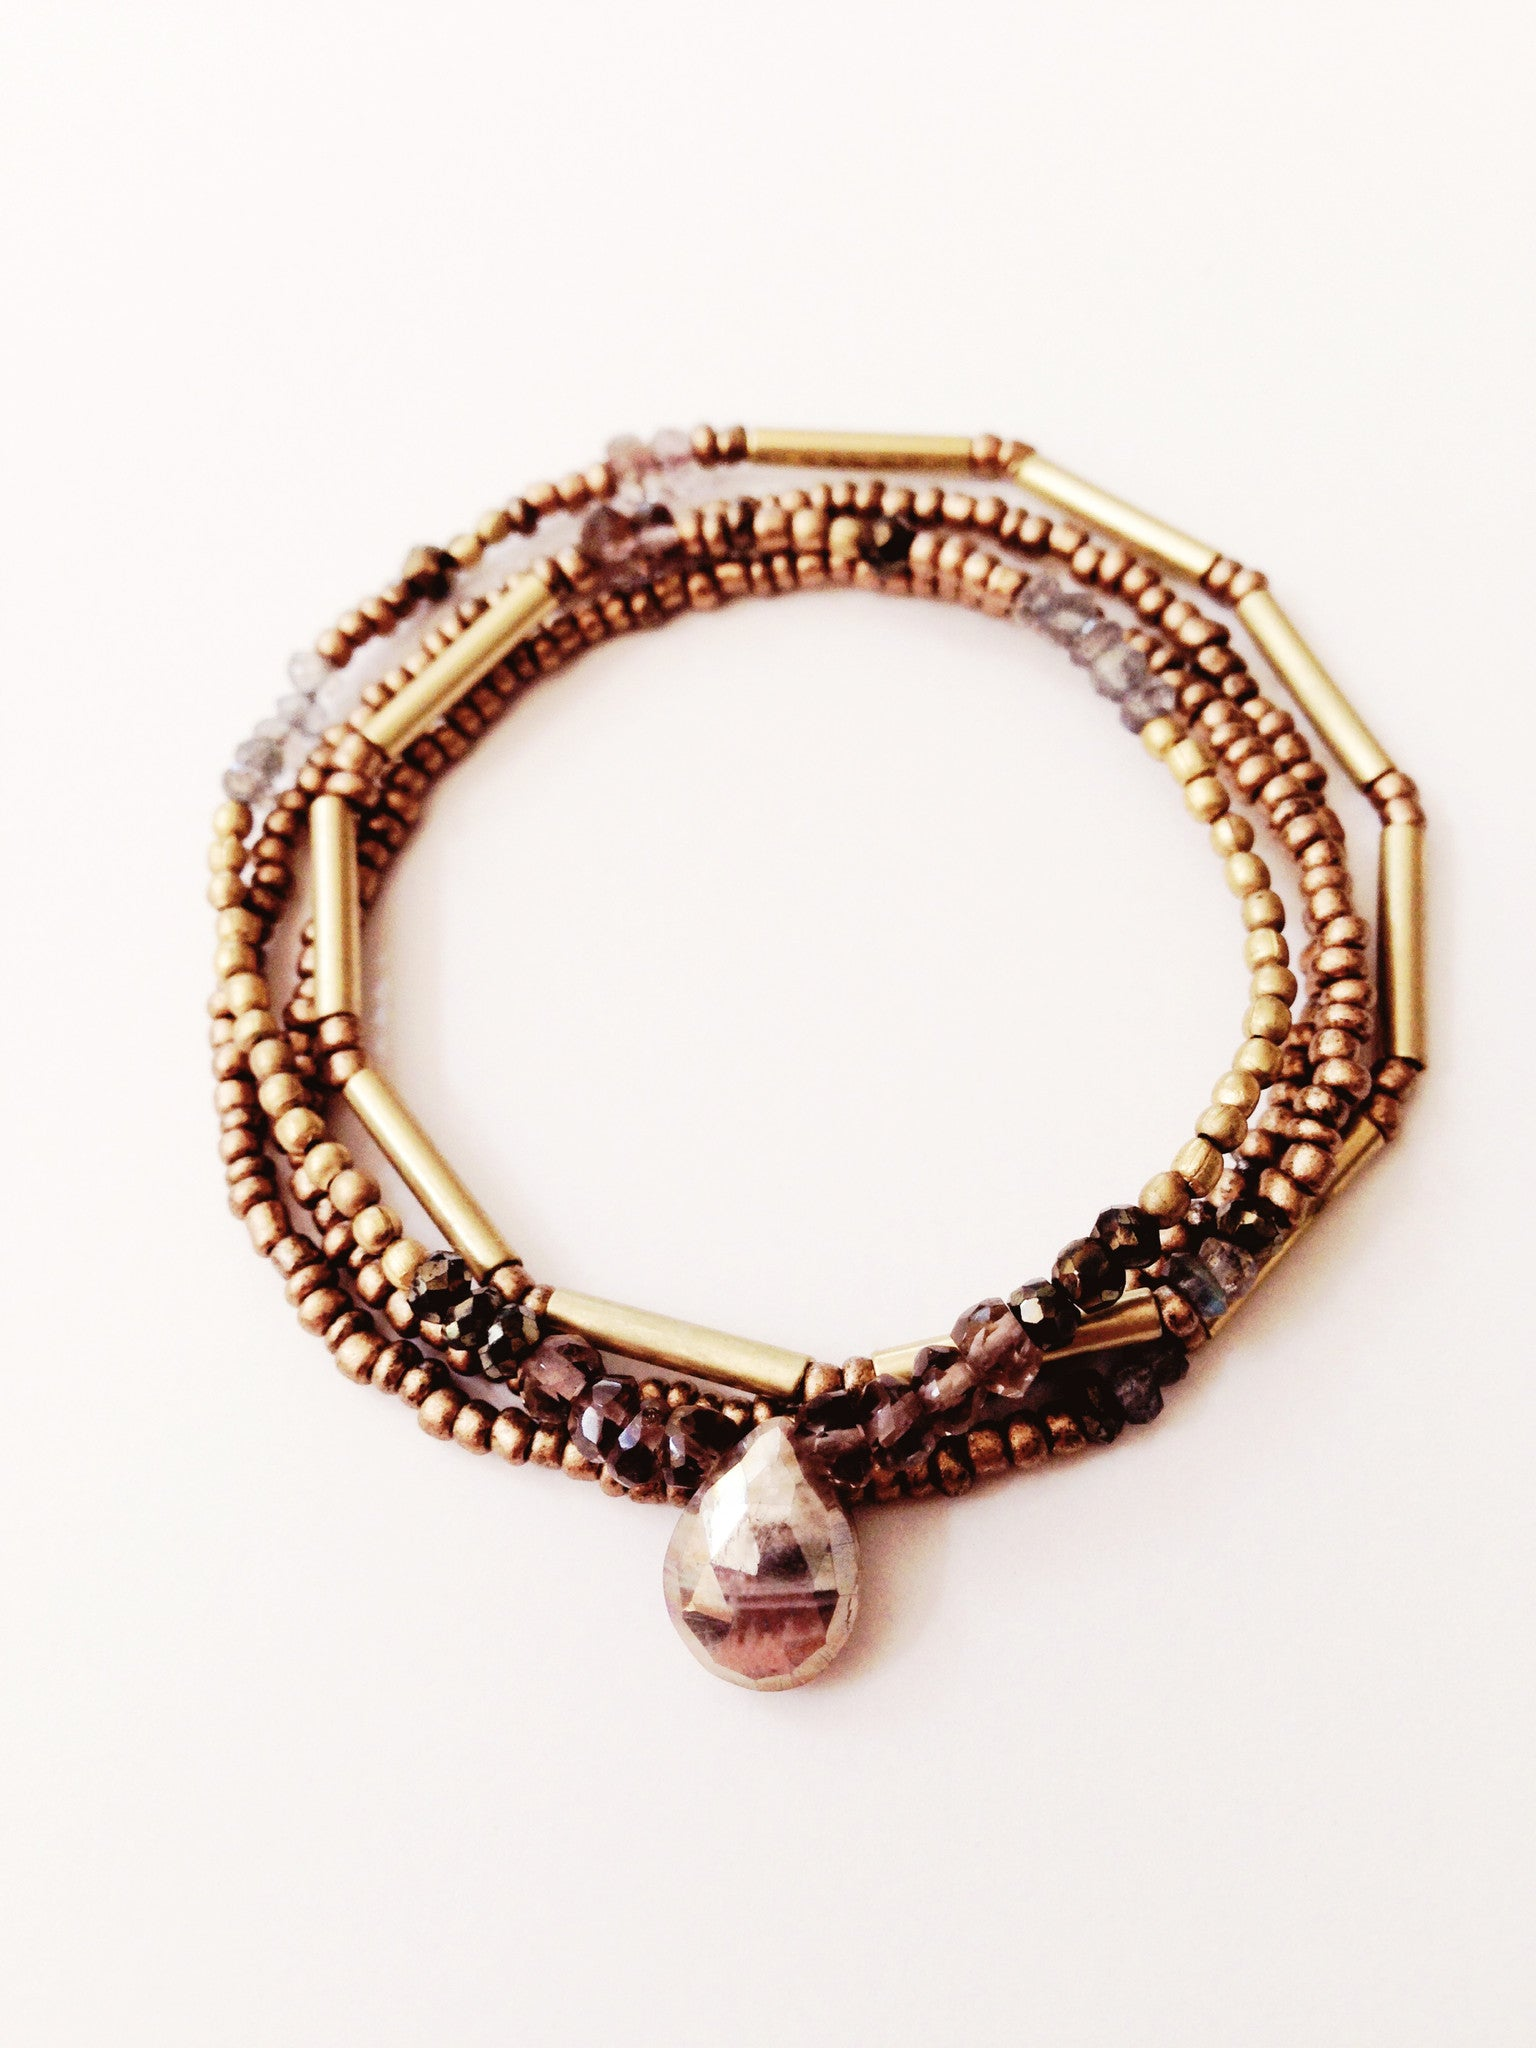 Dawn skies + Sapphire + Labradorite + Pyrite + Smoky Quartz + African Brass beaded crystal necklace